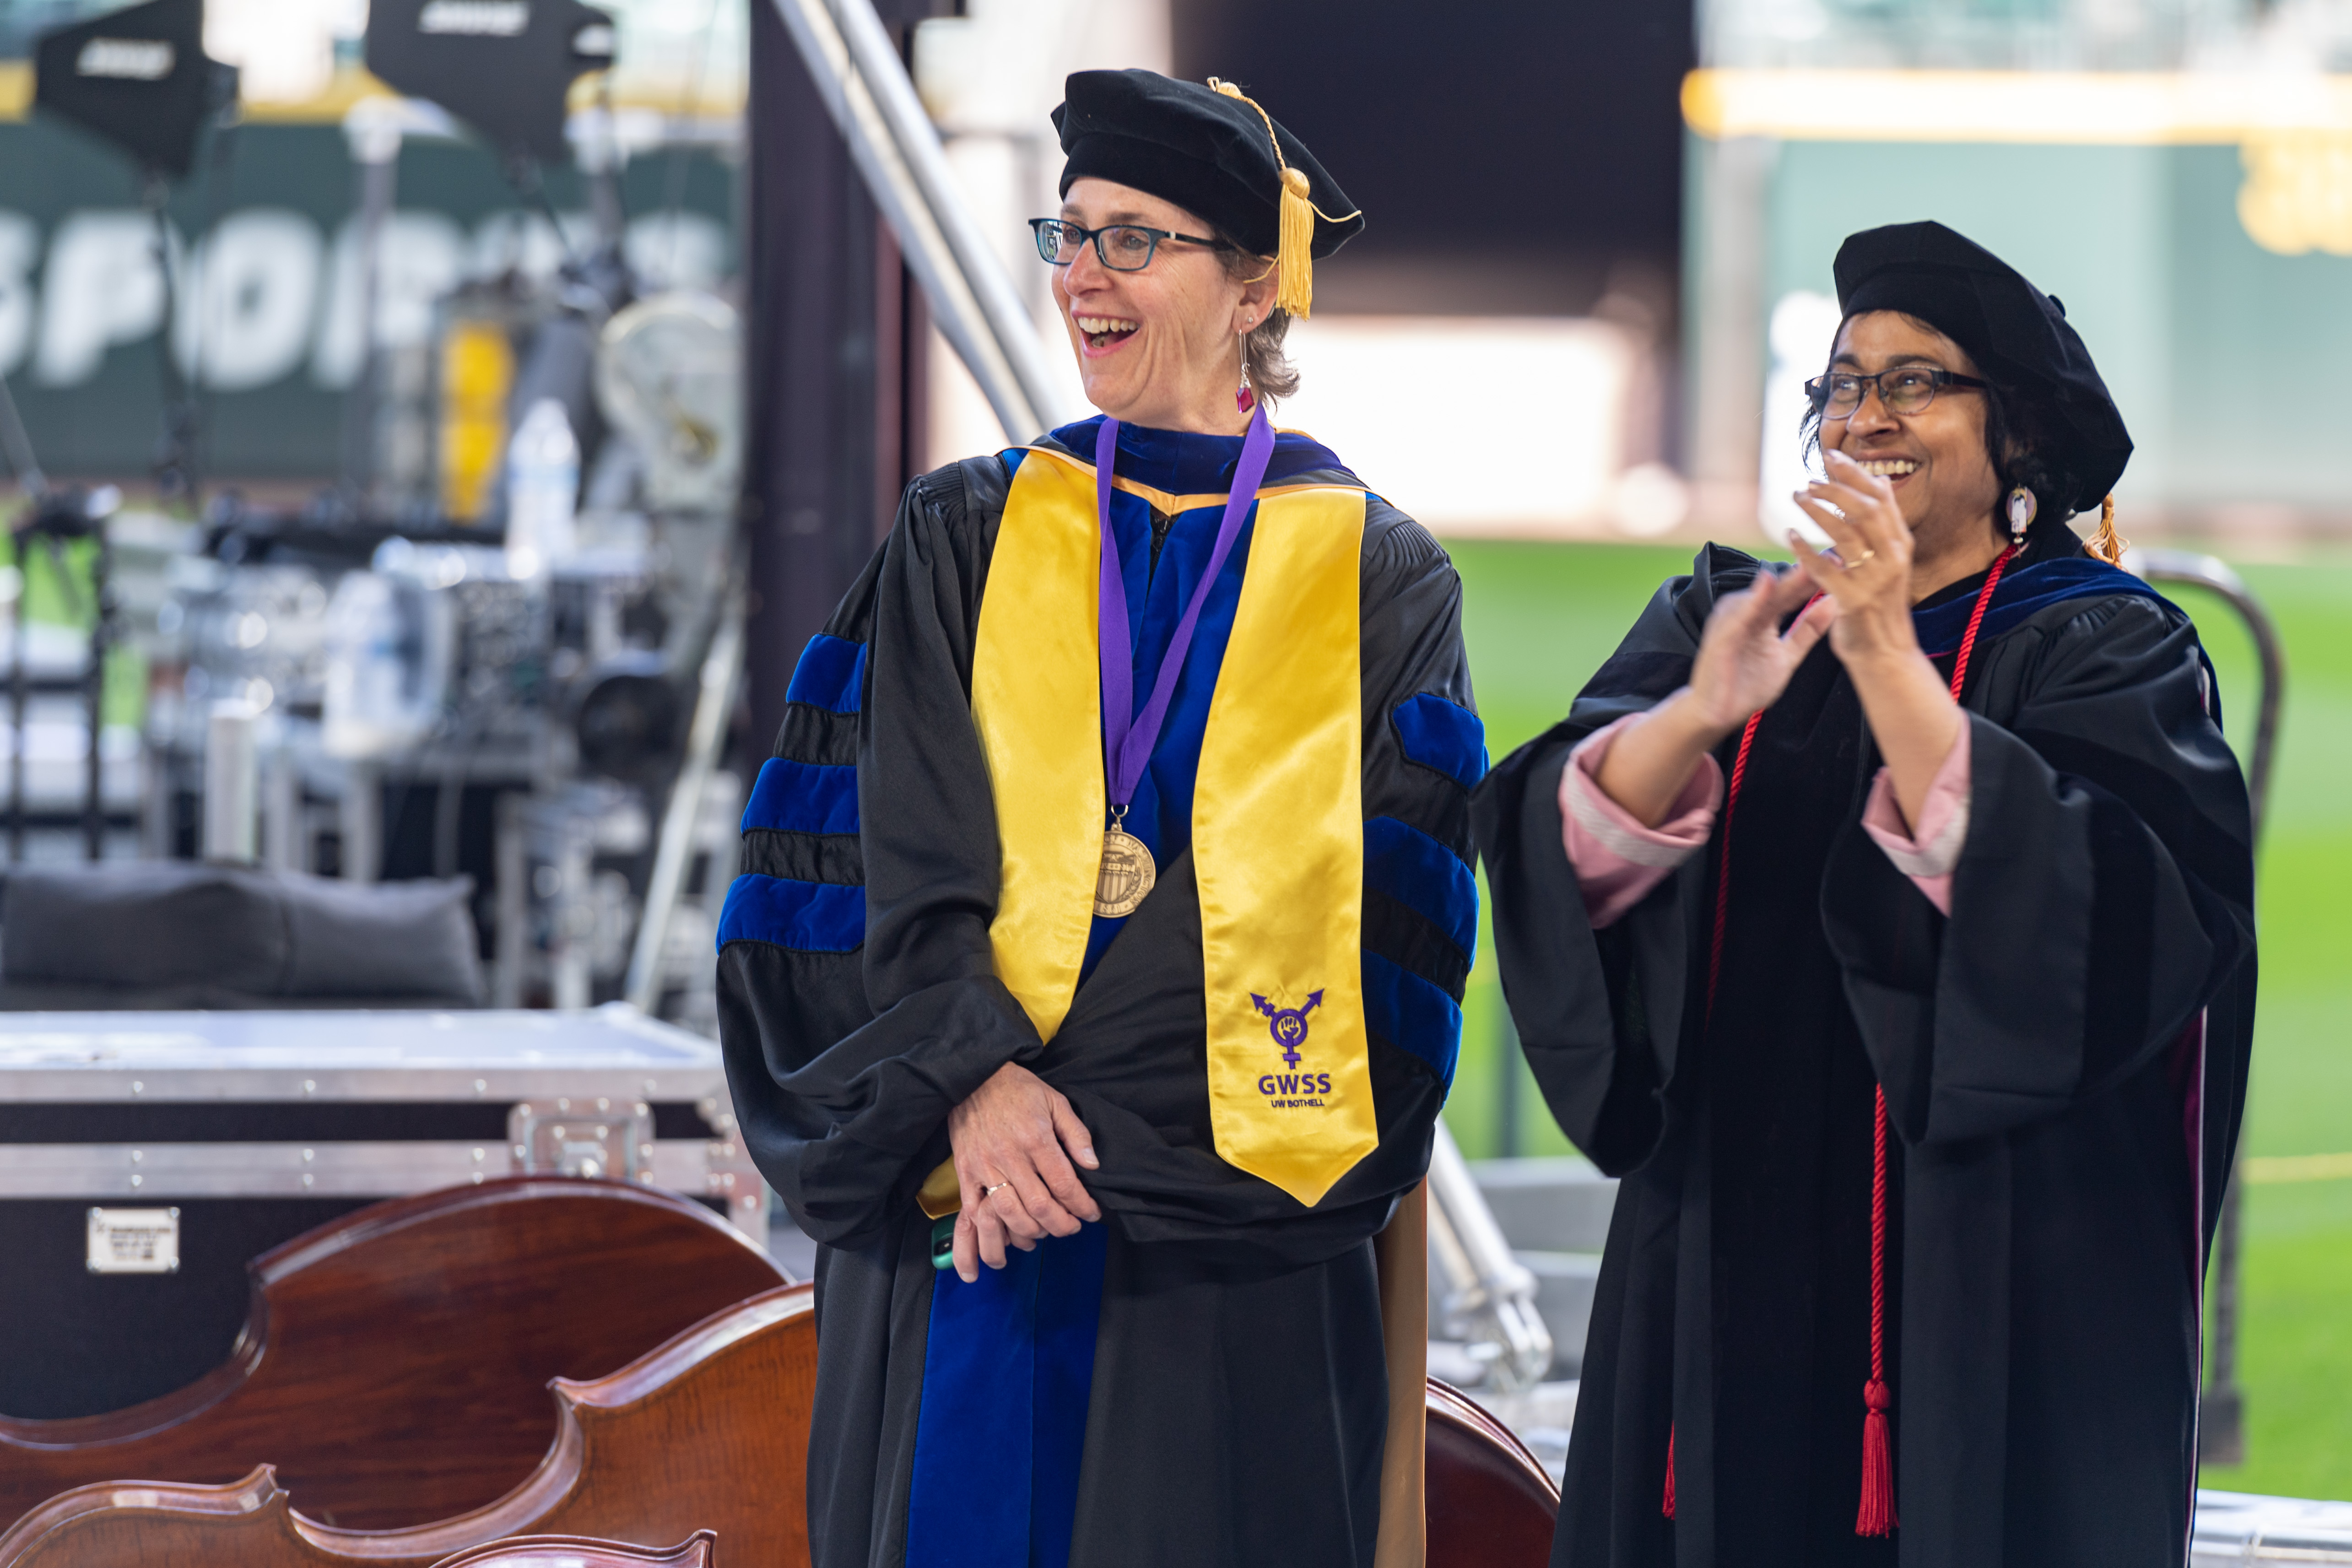 Two people, one wearing a stole, participate in commencement